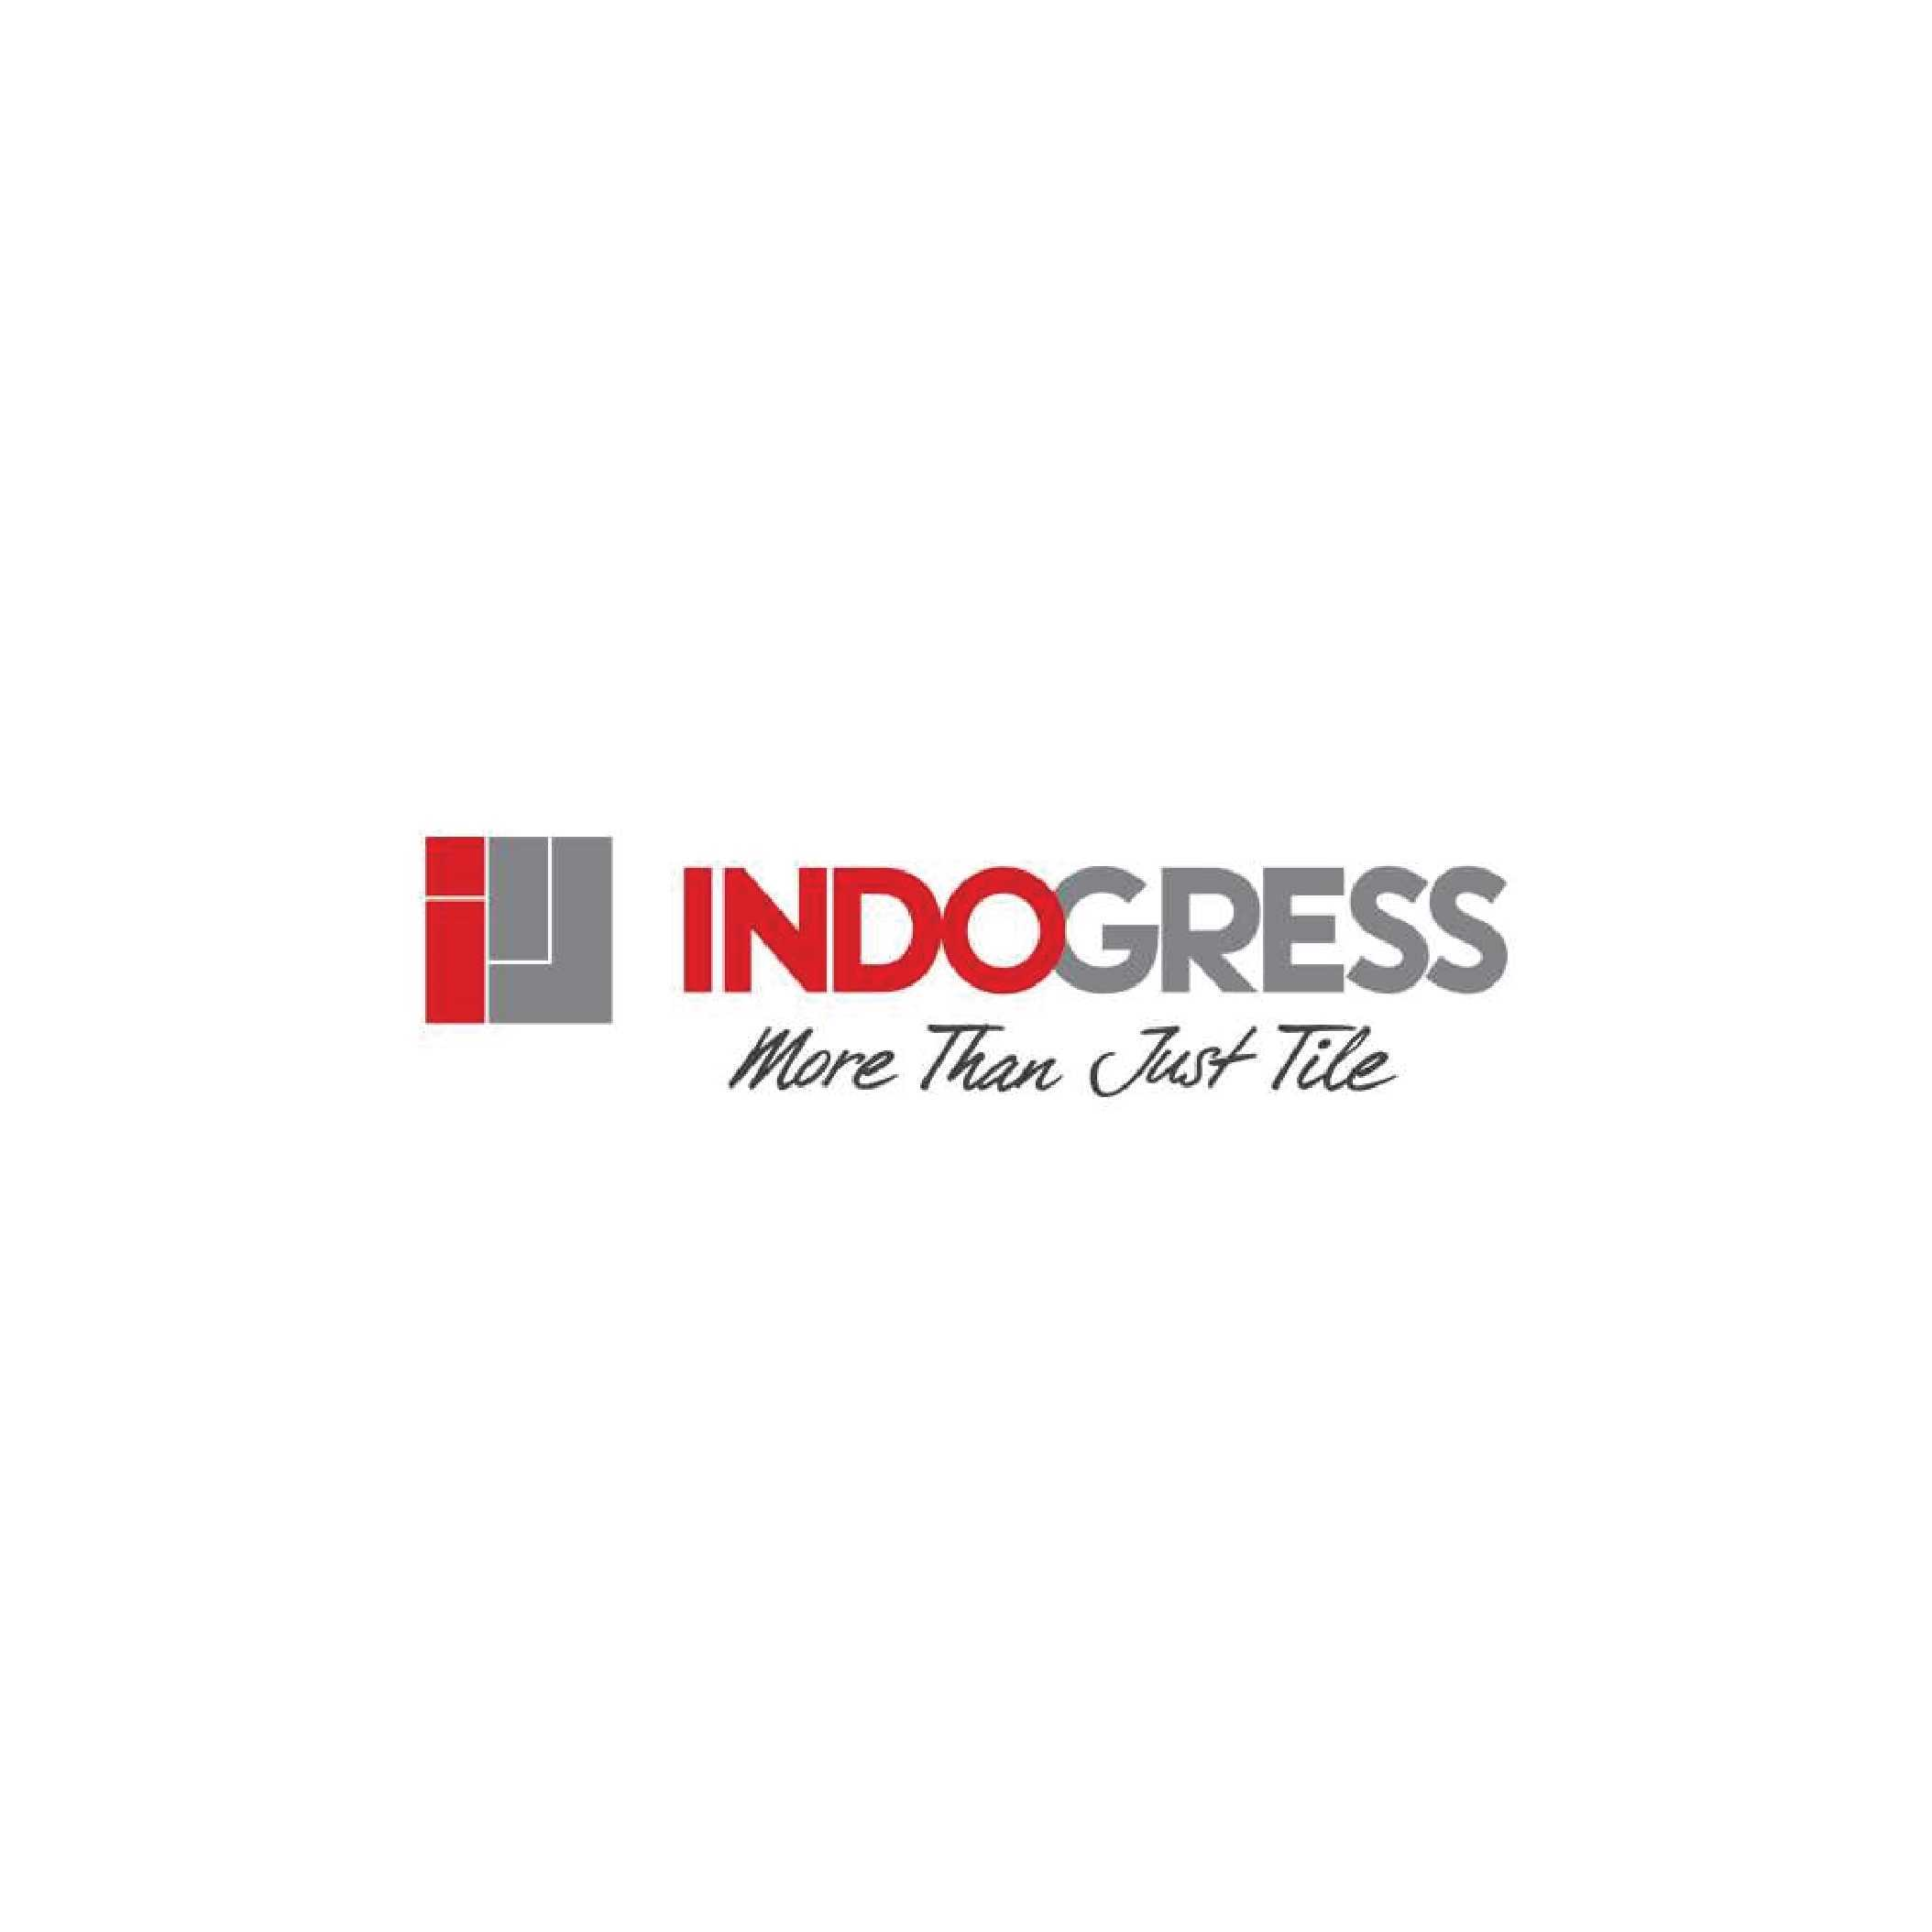 INDOGRESS